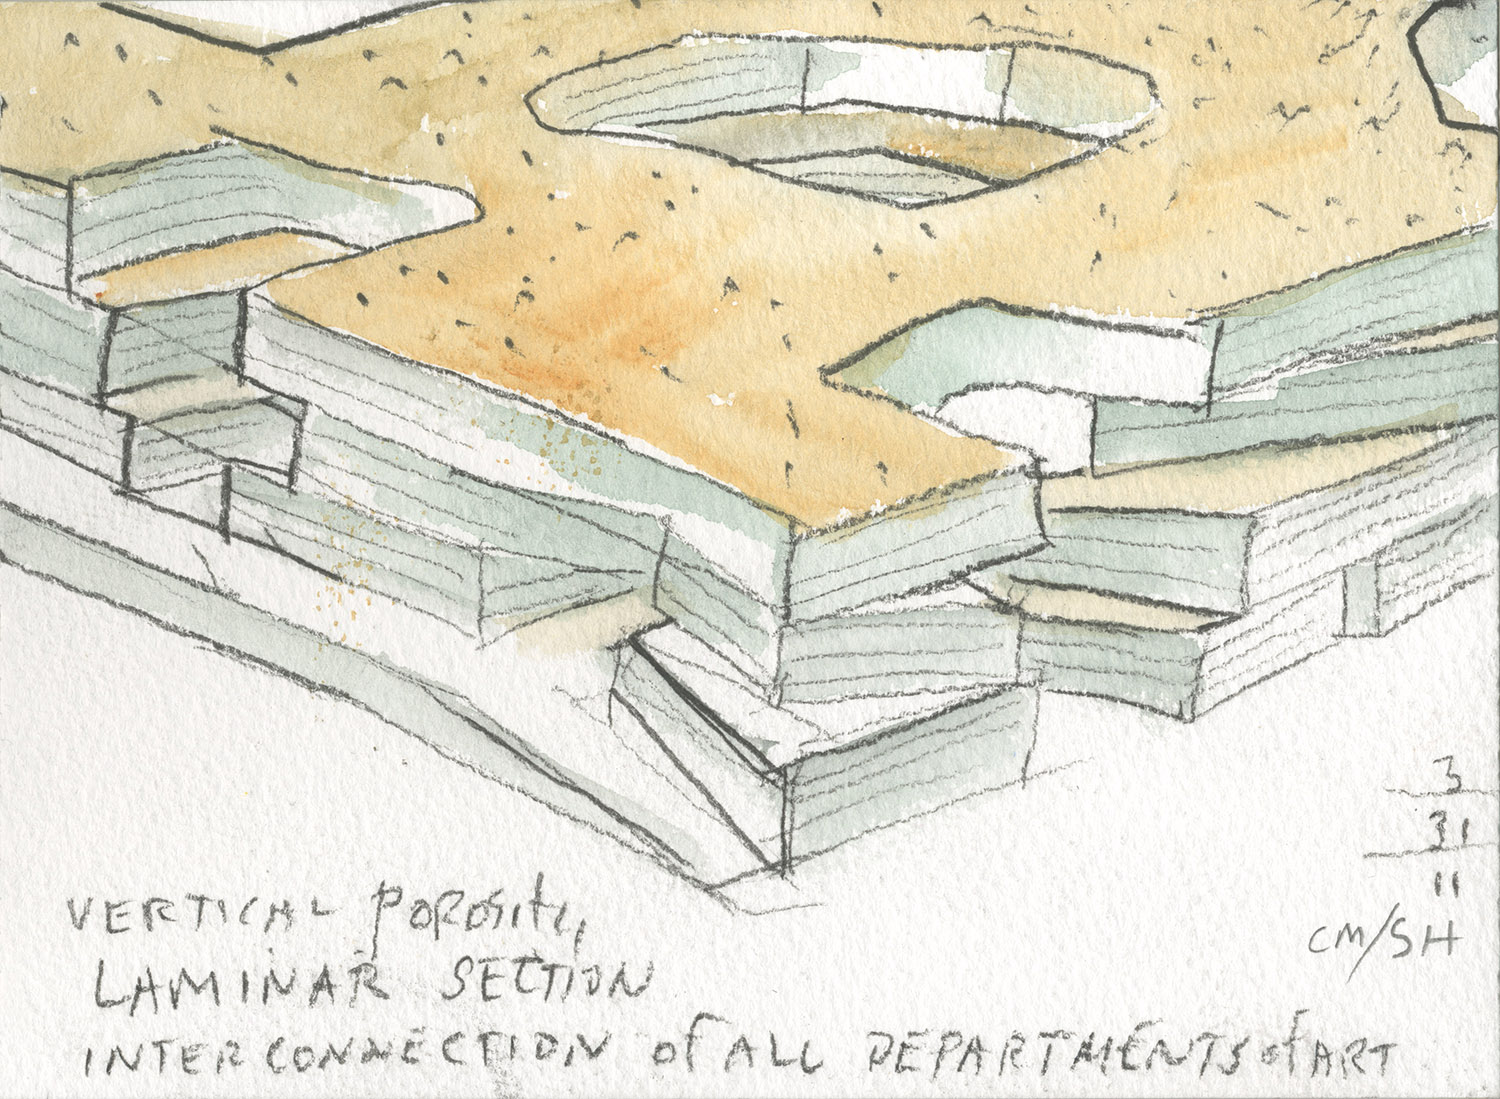 Watercolor concept sketch describing shifting plates intersected with vertical cuts }